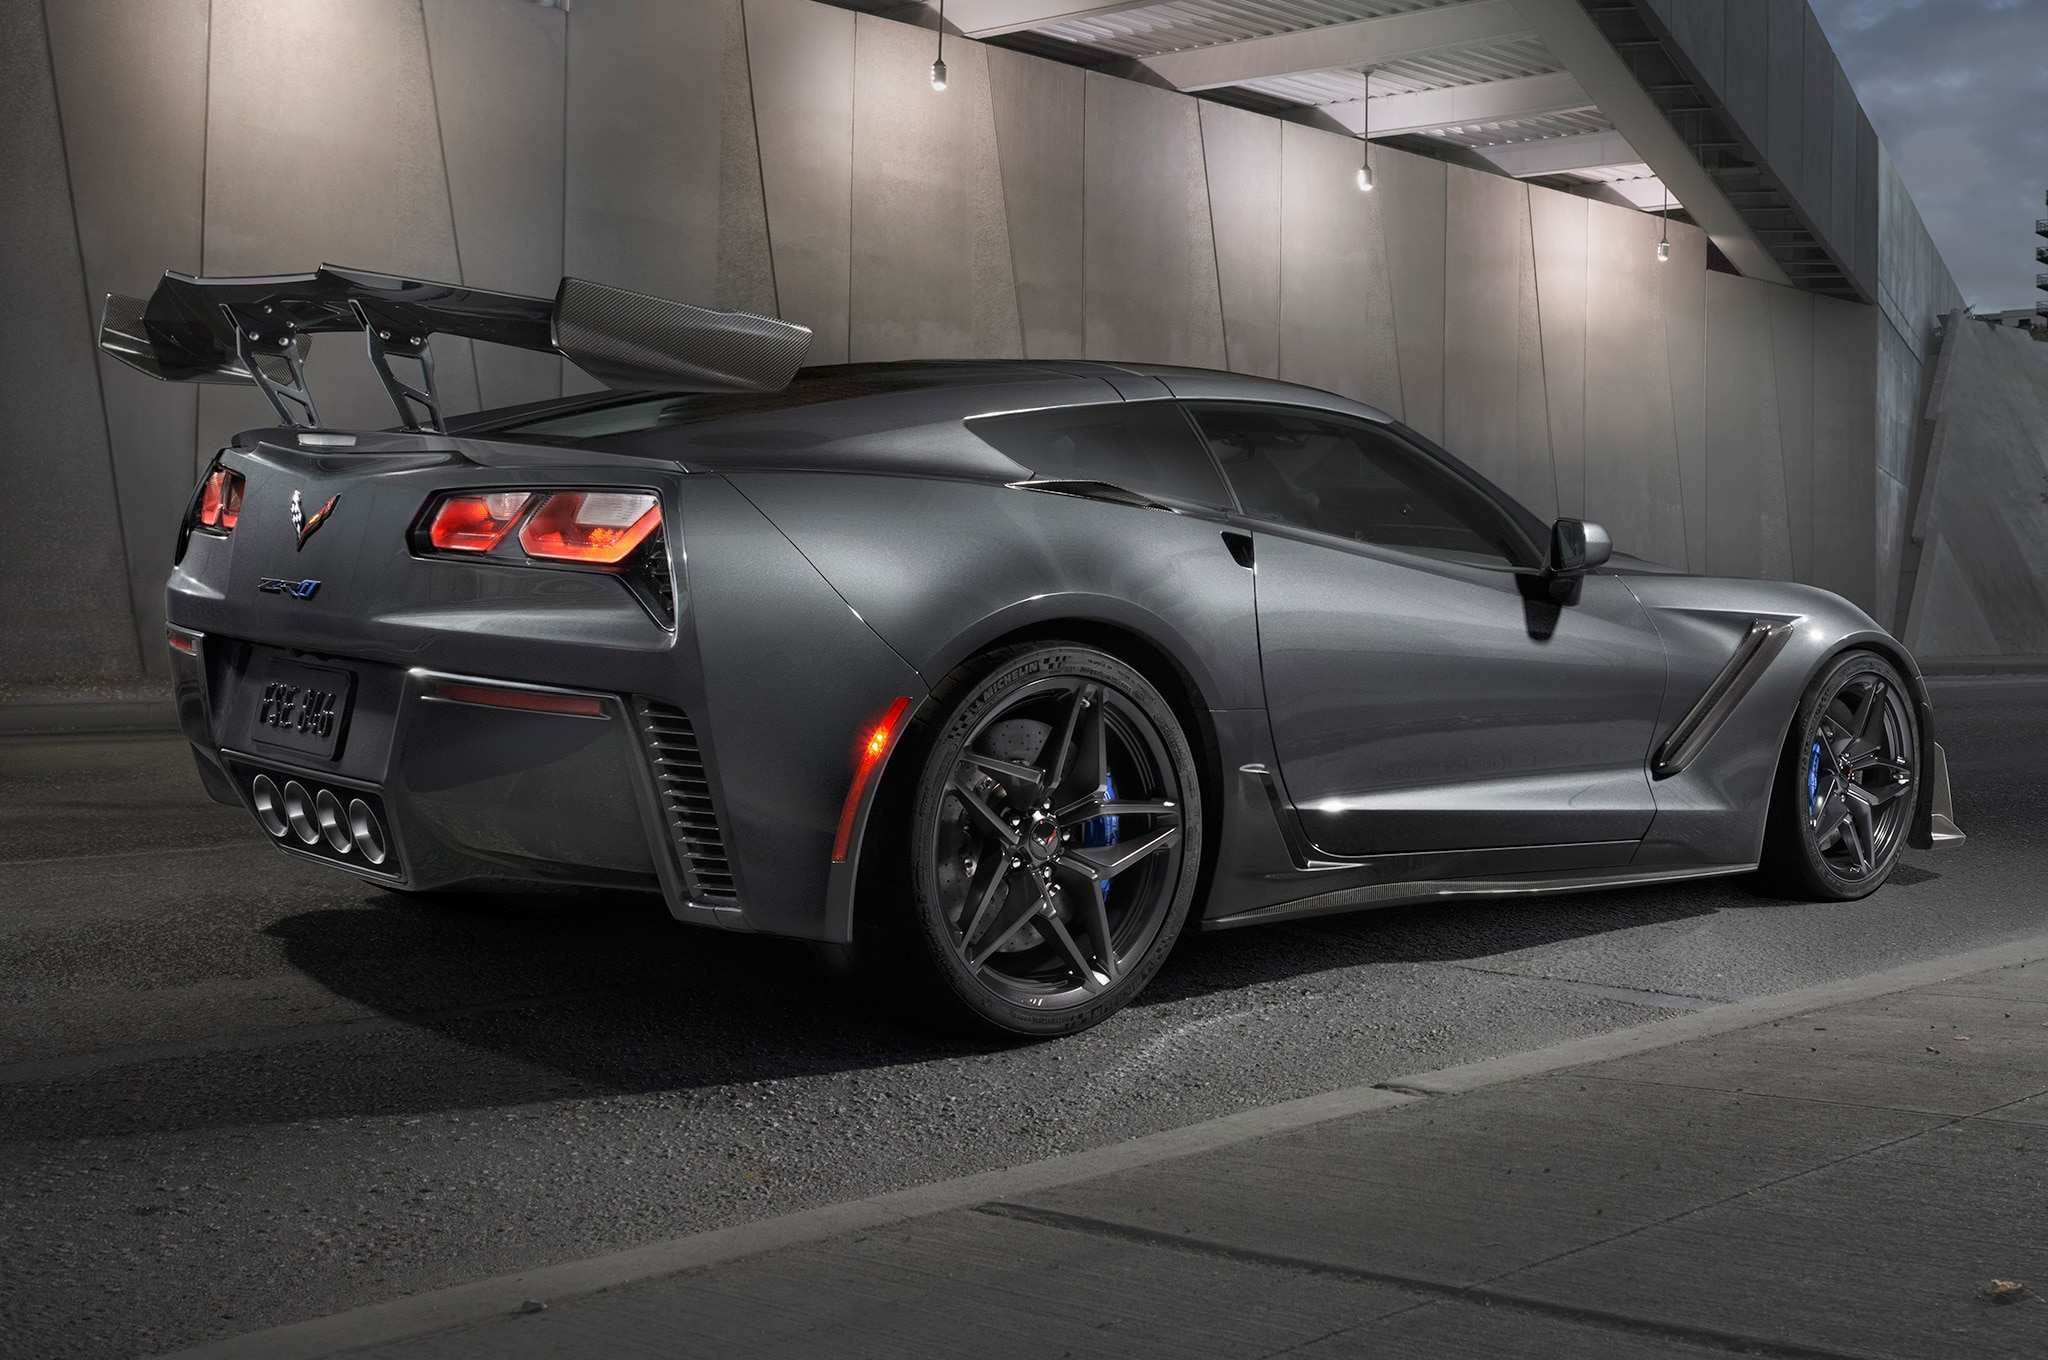 58 Best 2019 Chevrolet Corvette Zr1 Price Price and Review